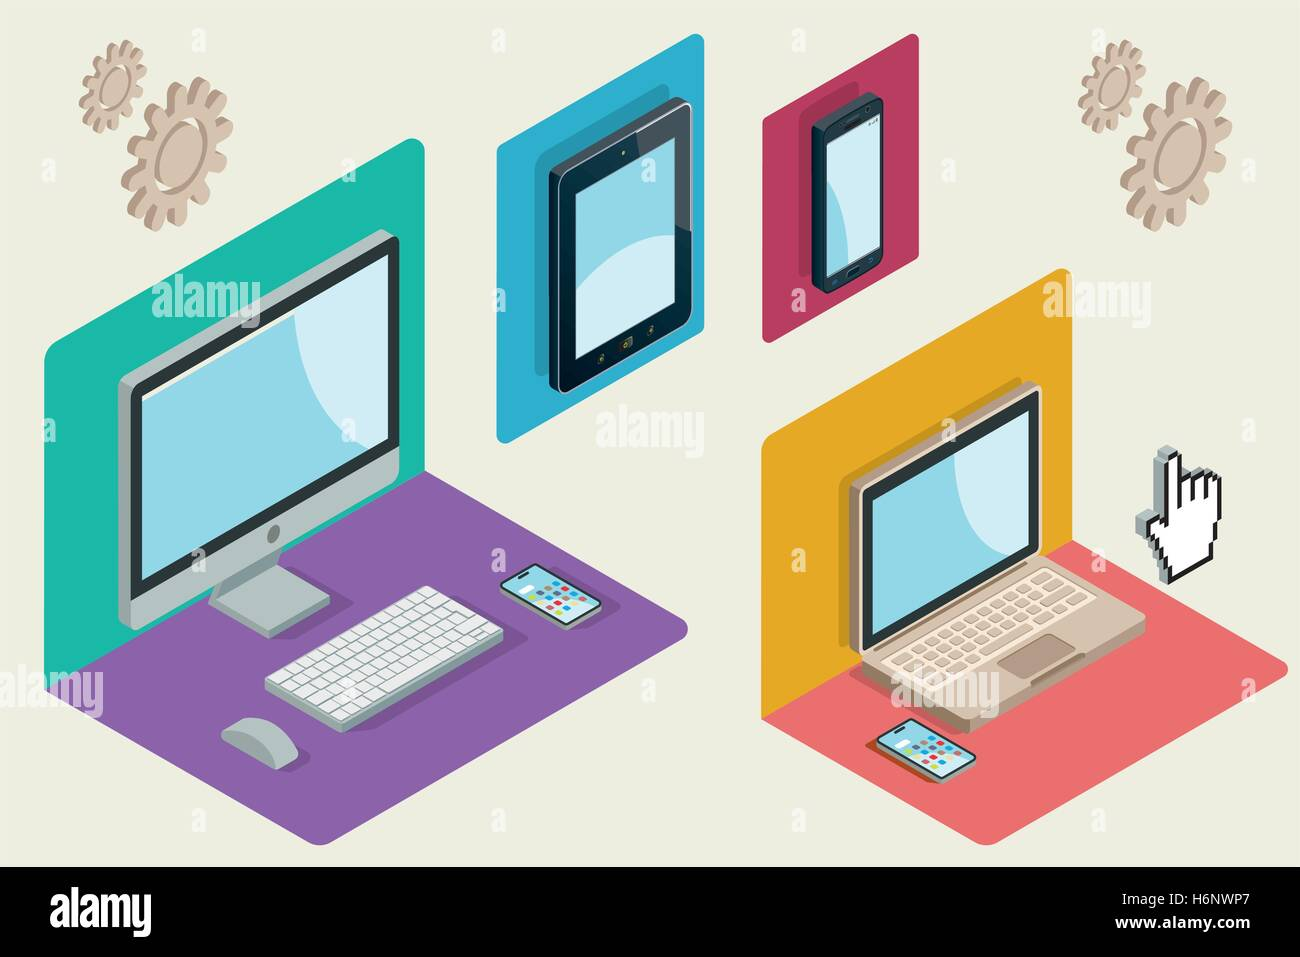 Isometric illustration with a computer, laptop, tablet and smartphone. Responsive web design concept. Vector illustration. - Stock Image